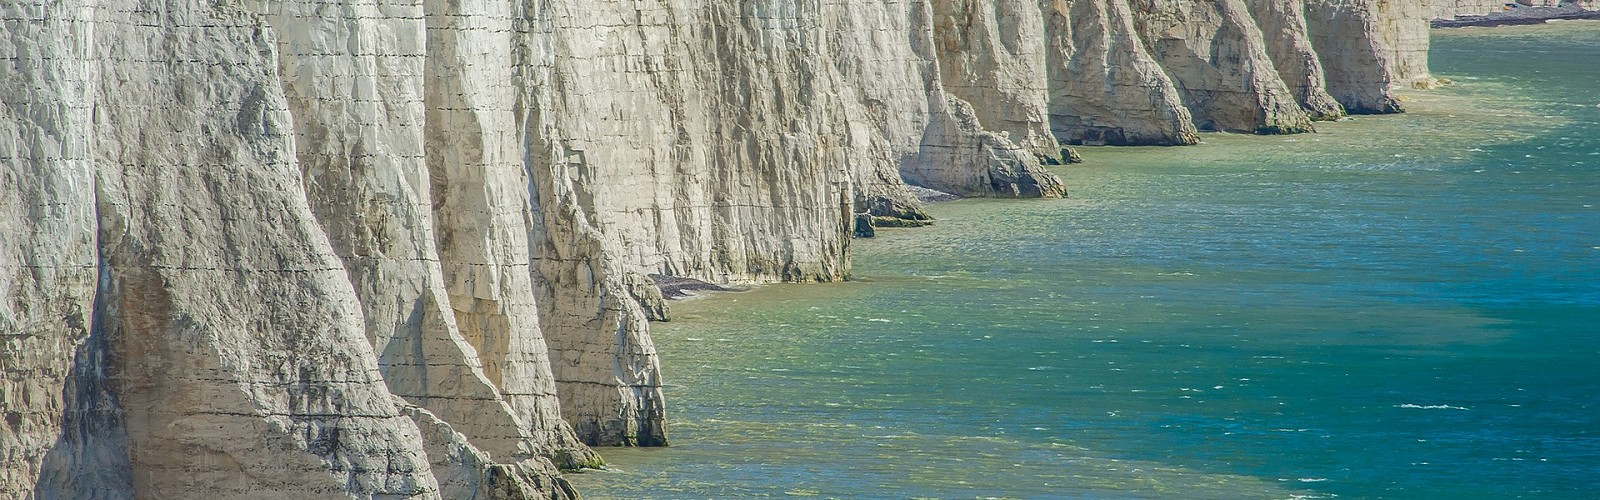 foot of the Seven Sisters cliffs (image: pixabay)